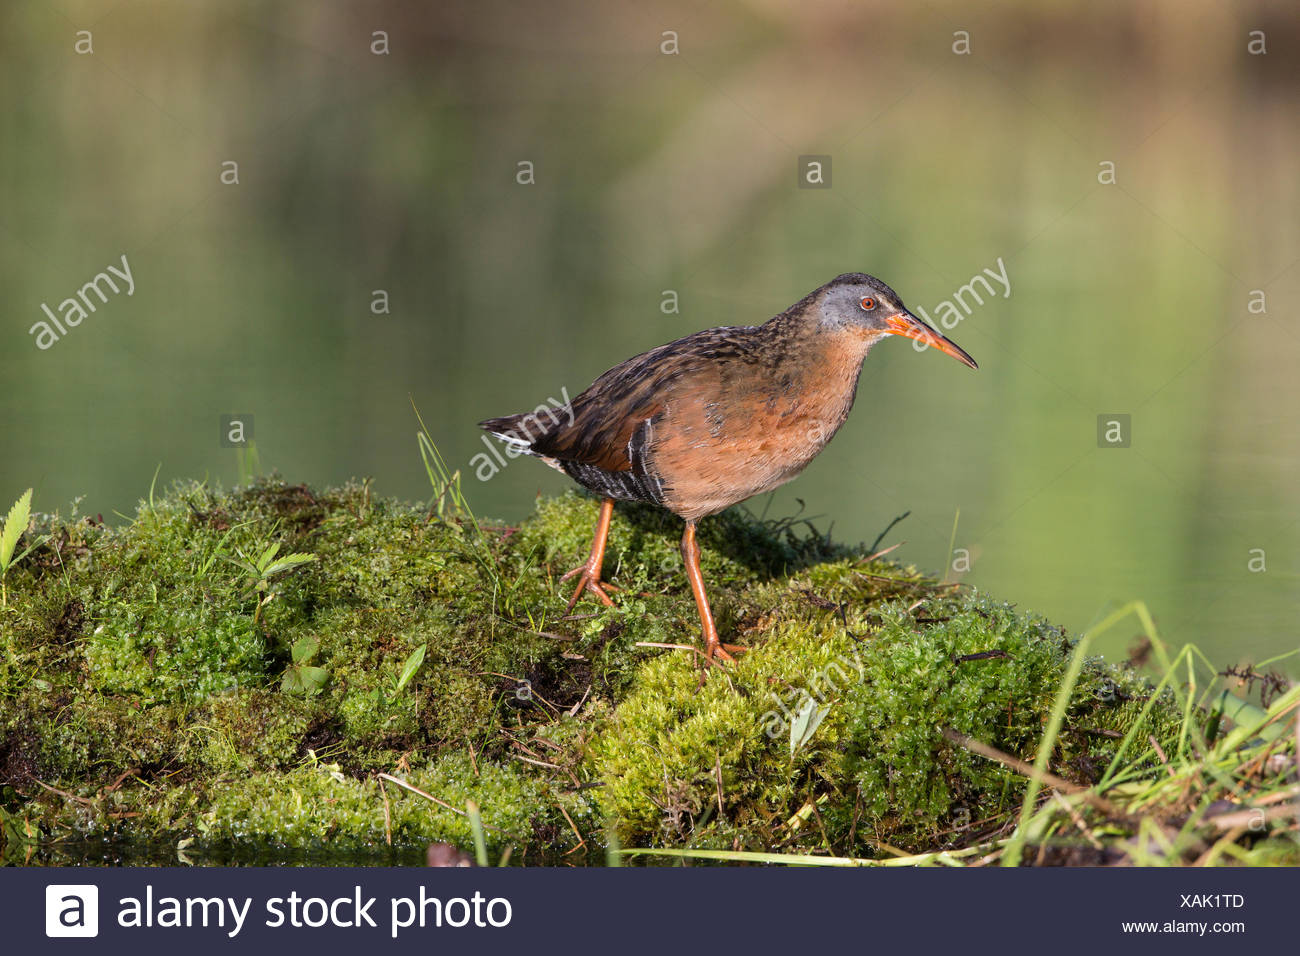 Virginia rail (Rallus limicola), male, Lac Le Jeune, British Columbia. Bird attracted to perch setup with recorded call. - Stock Image